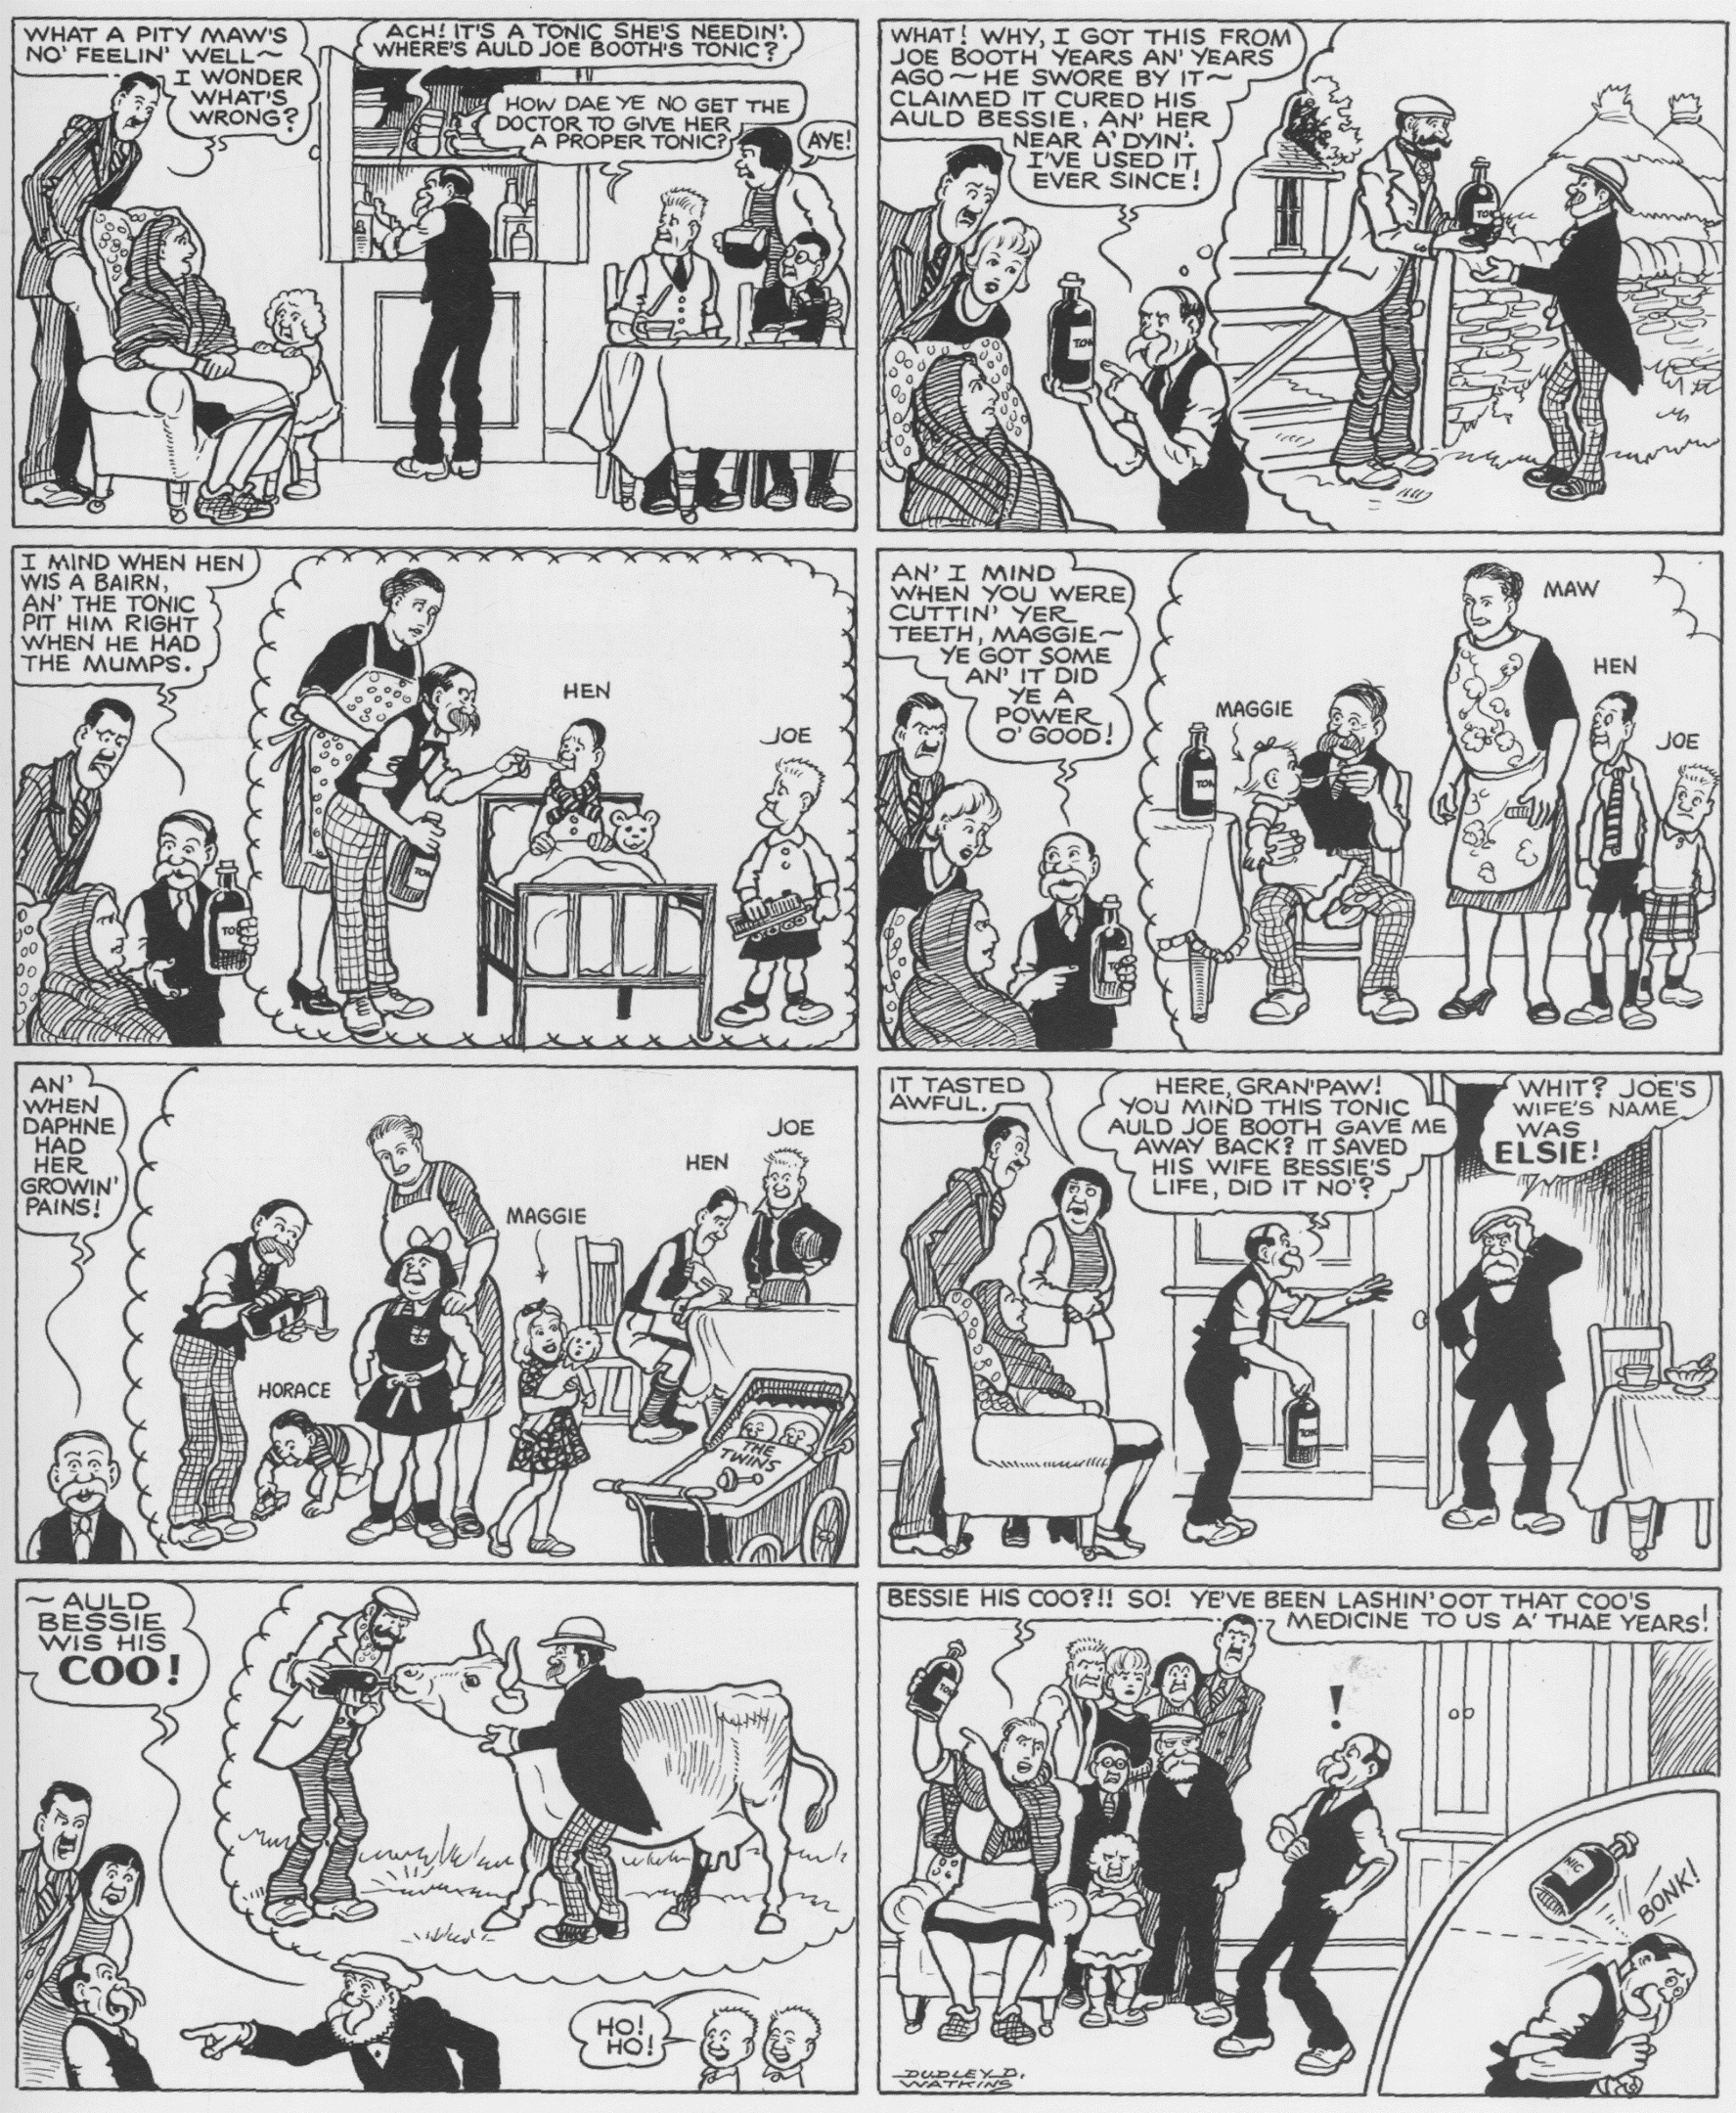 1954 Growing Up – we get a rare glimpse at young Broons through the ages in this strip, showing how they aged prior to 1936.